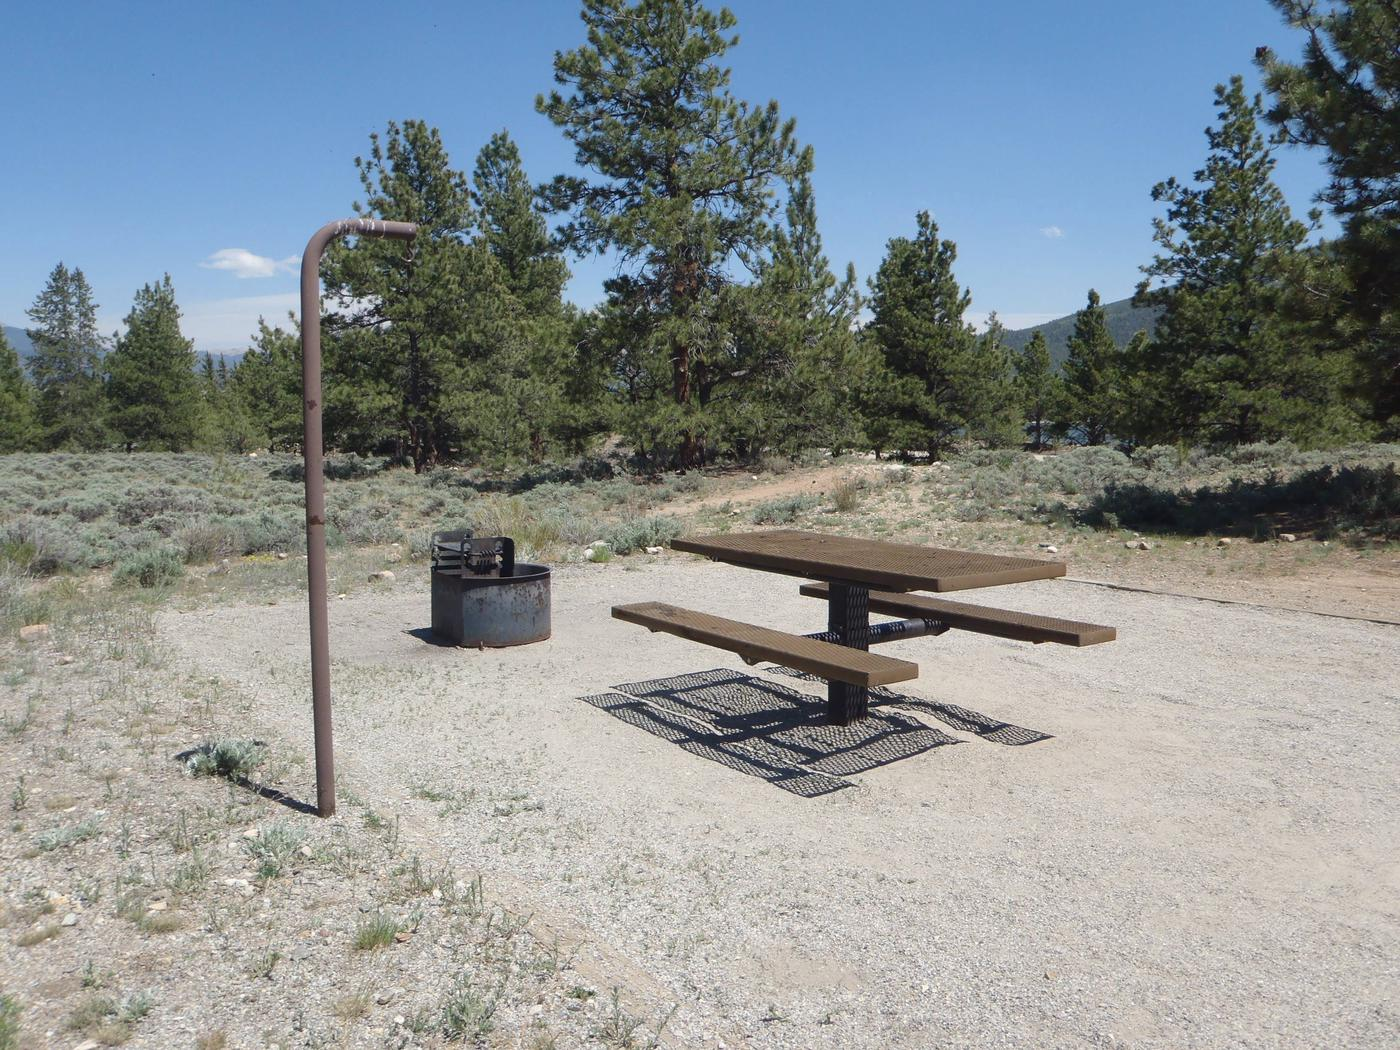 White Star Campground, site 18 picnic table and fire ring